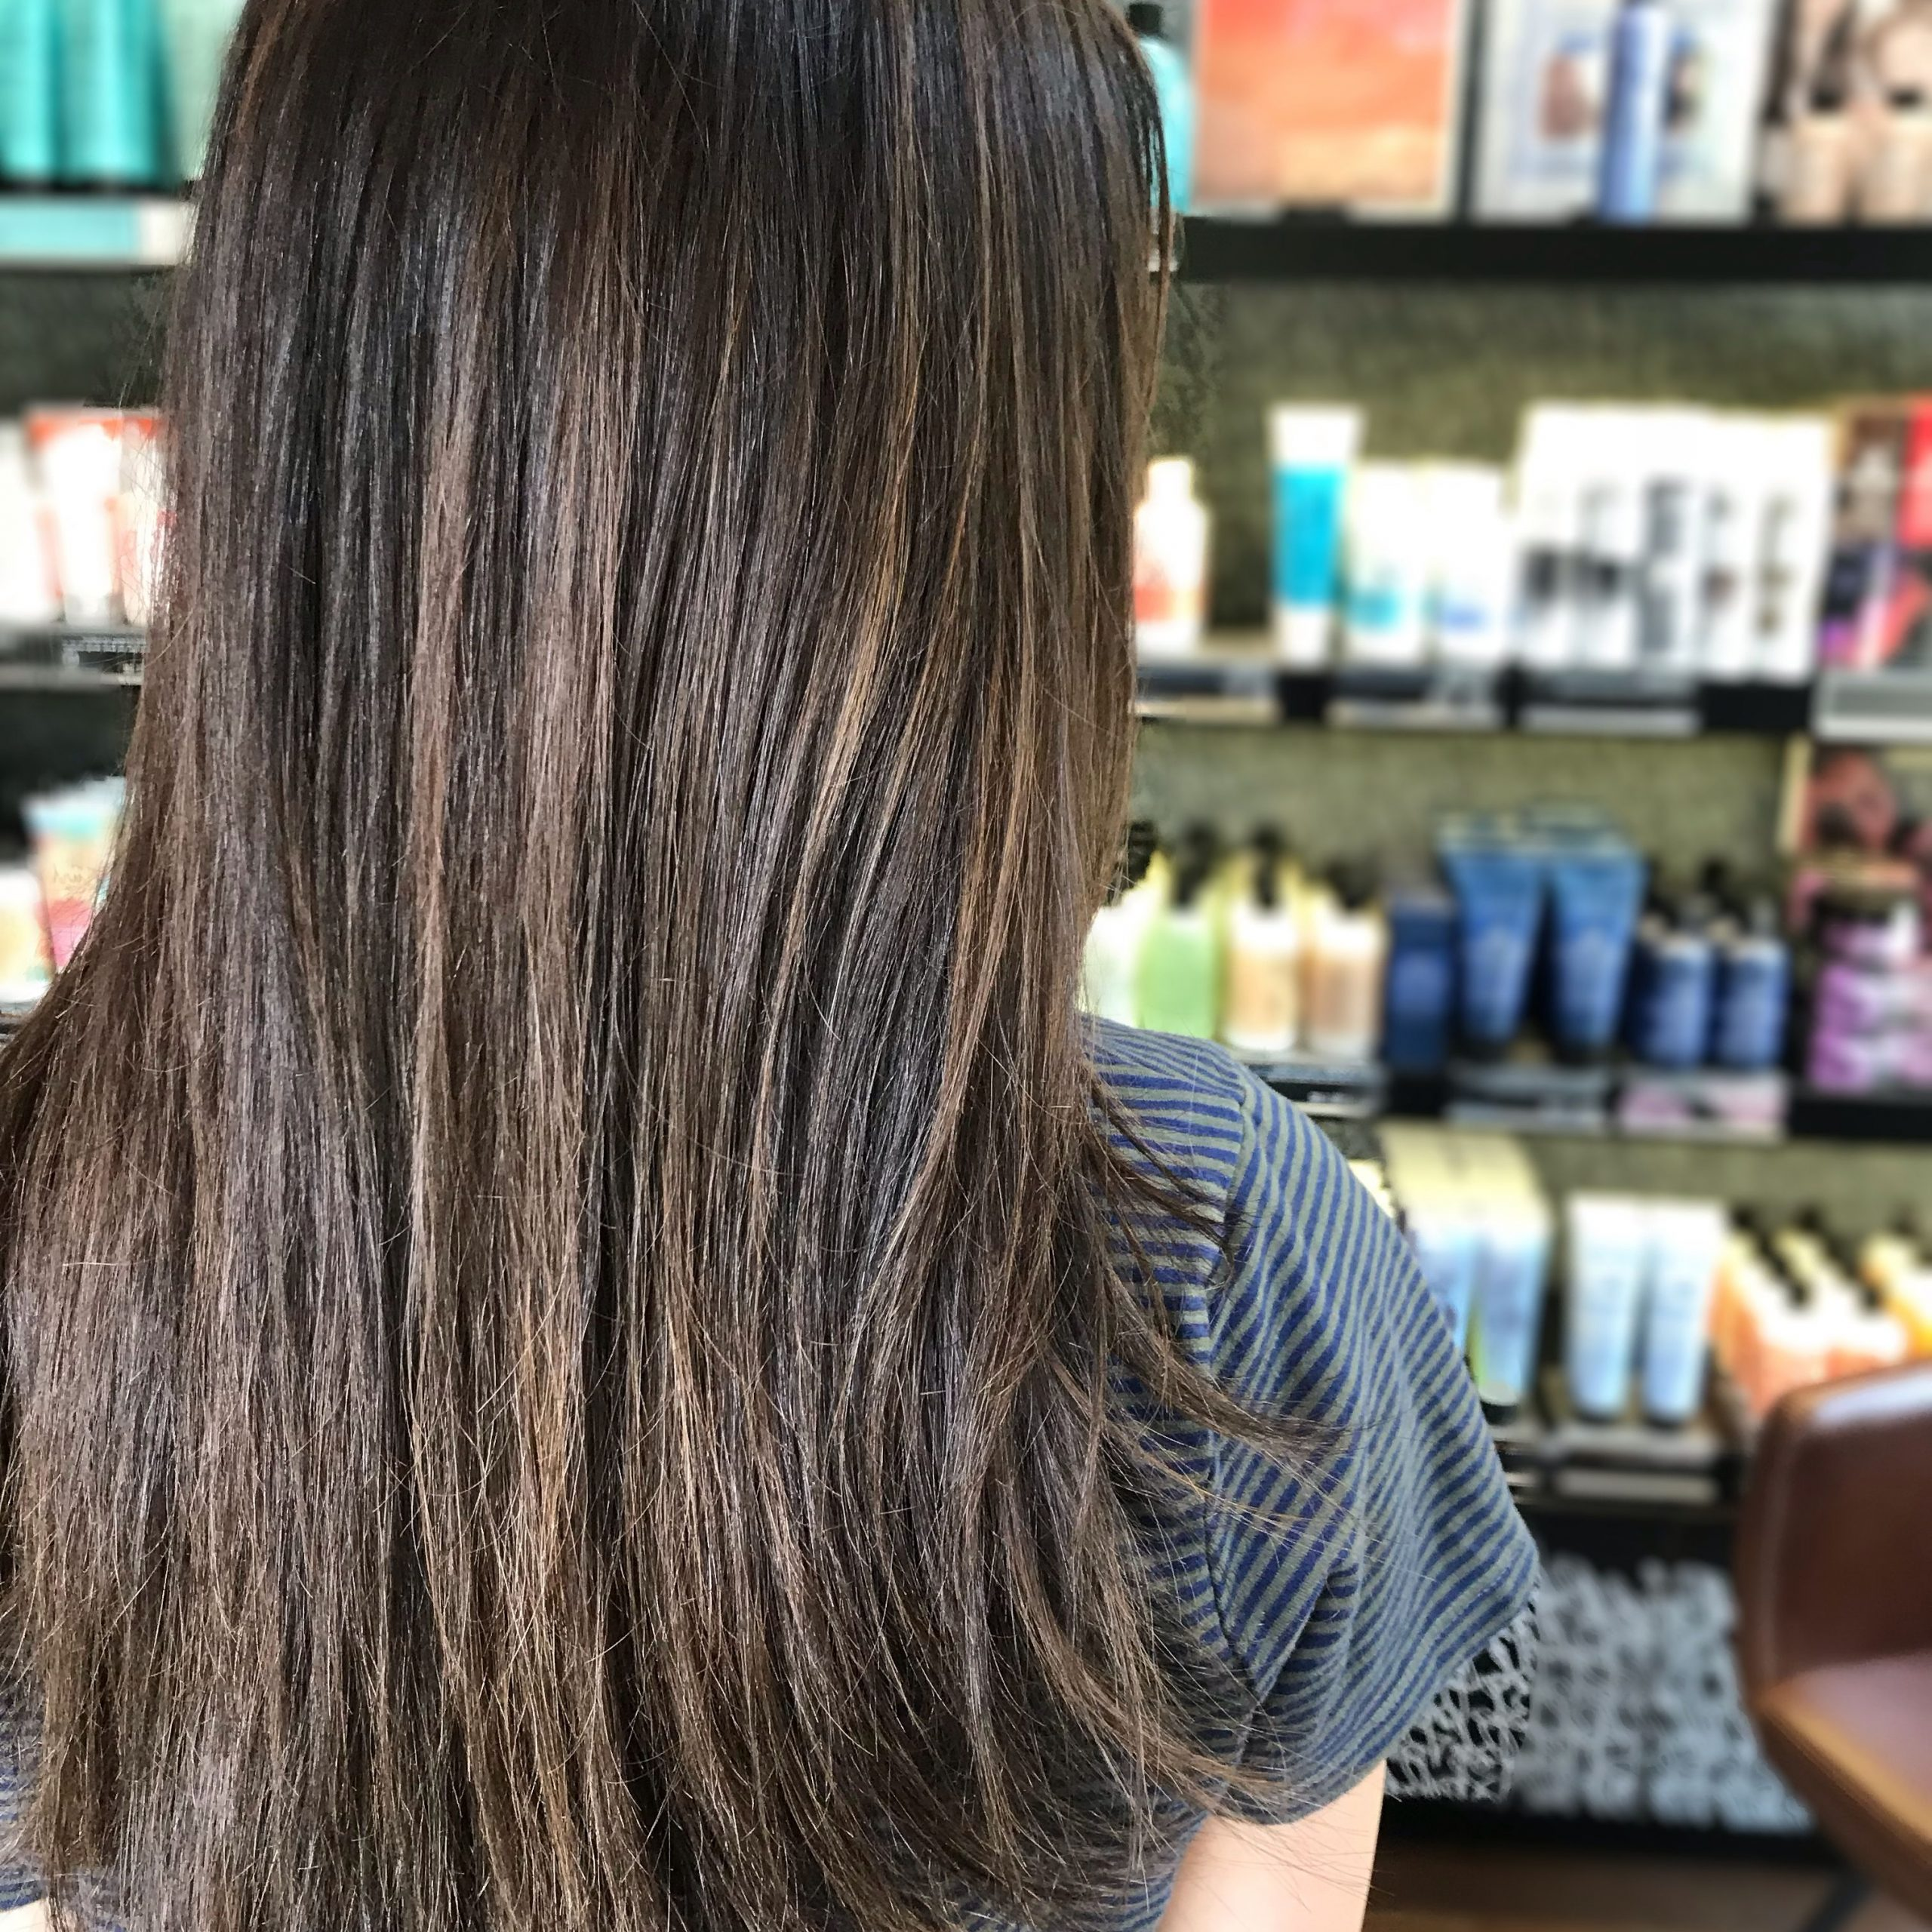 Brunette Hair | Brunette Hair, Hair Styles, Layered Hair Inside Layered Dimensional Hairstyles (View 6 of 20)